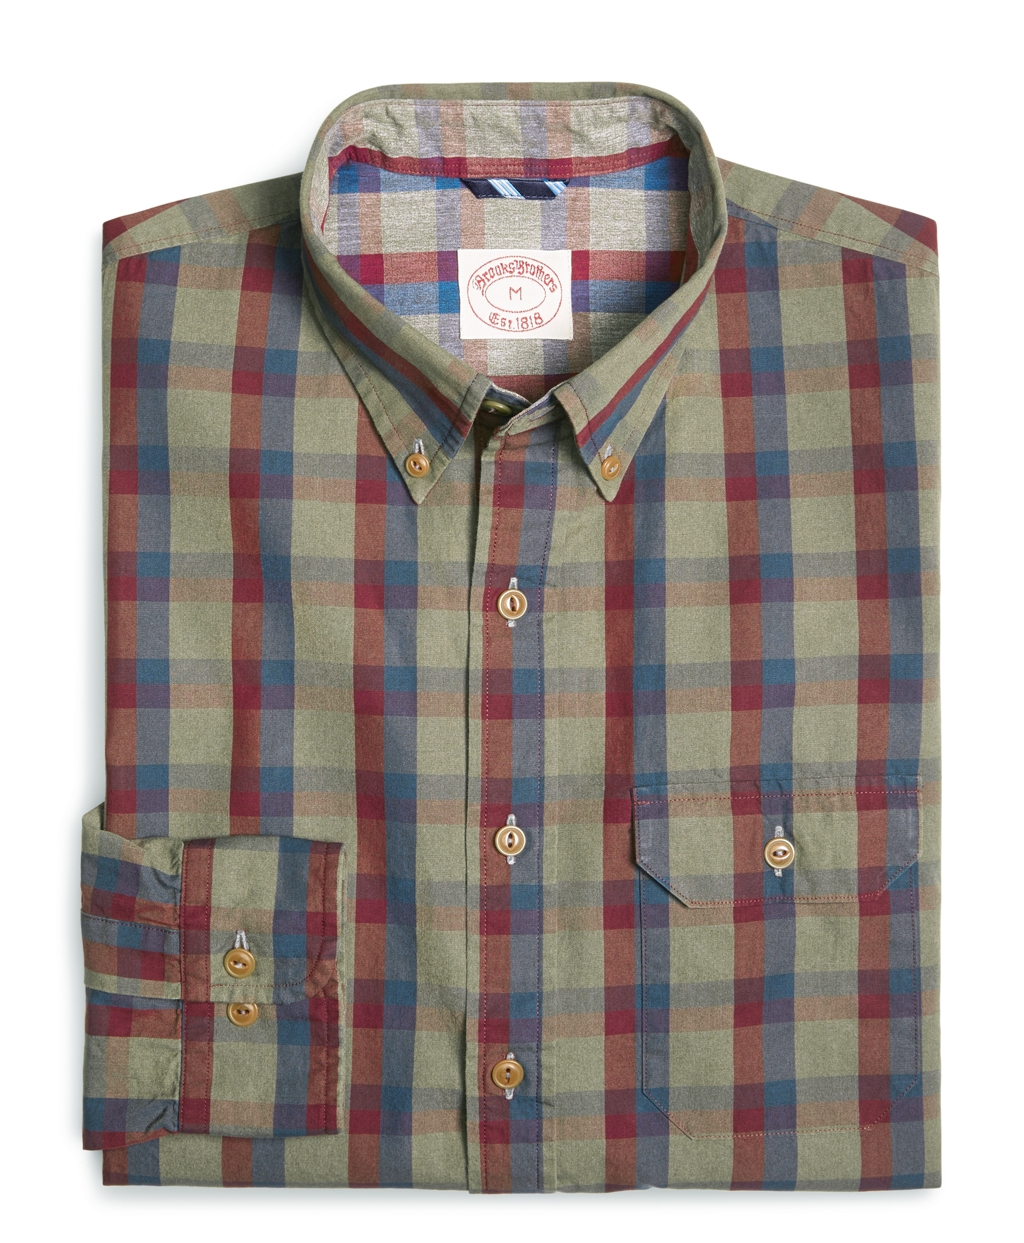 Brooks brothers dye plaid check sport shirt in multicolor Brooks brothers shirt size guide